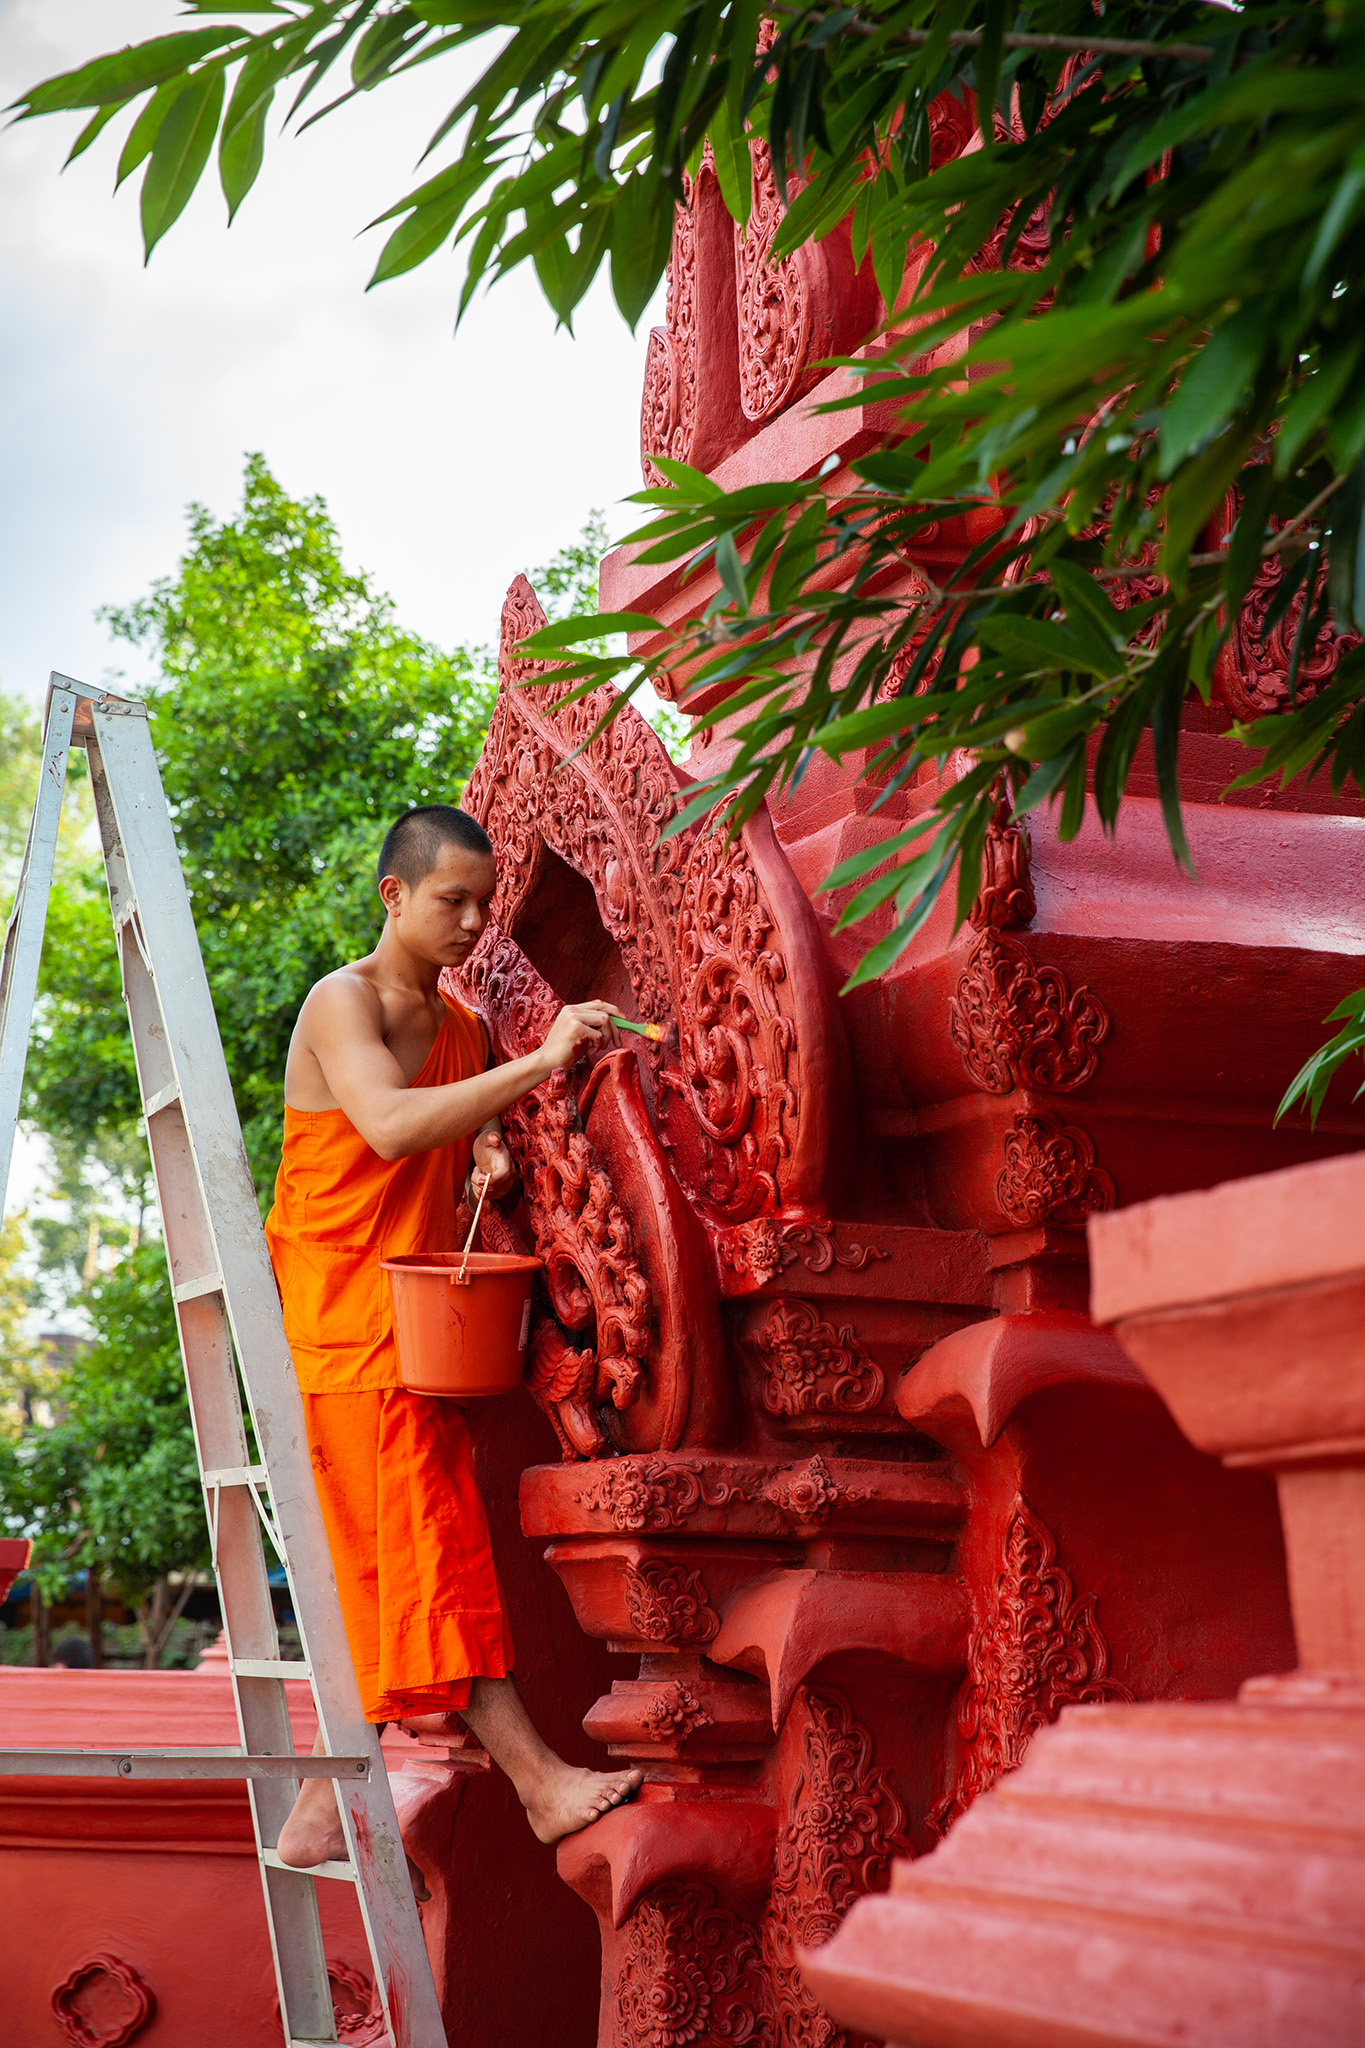 a young monk touches up the paint at Wat Chedi Luang